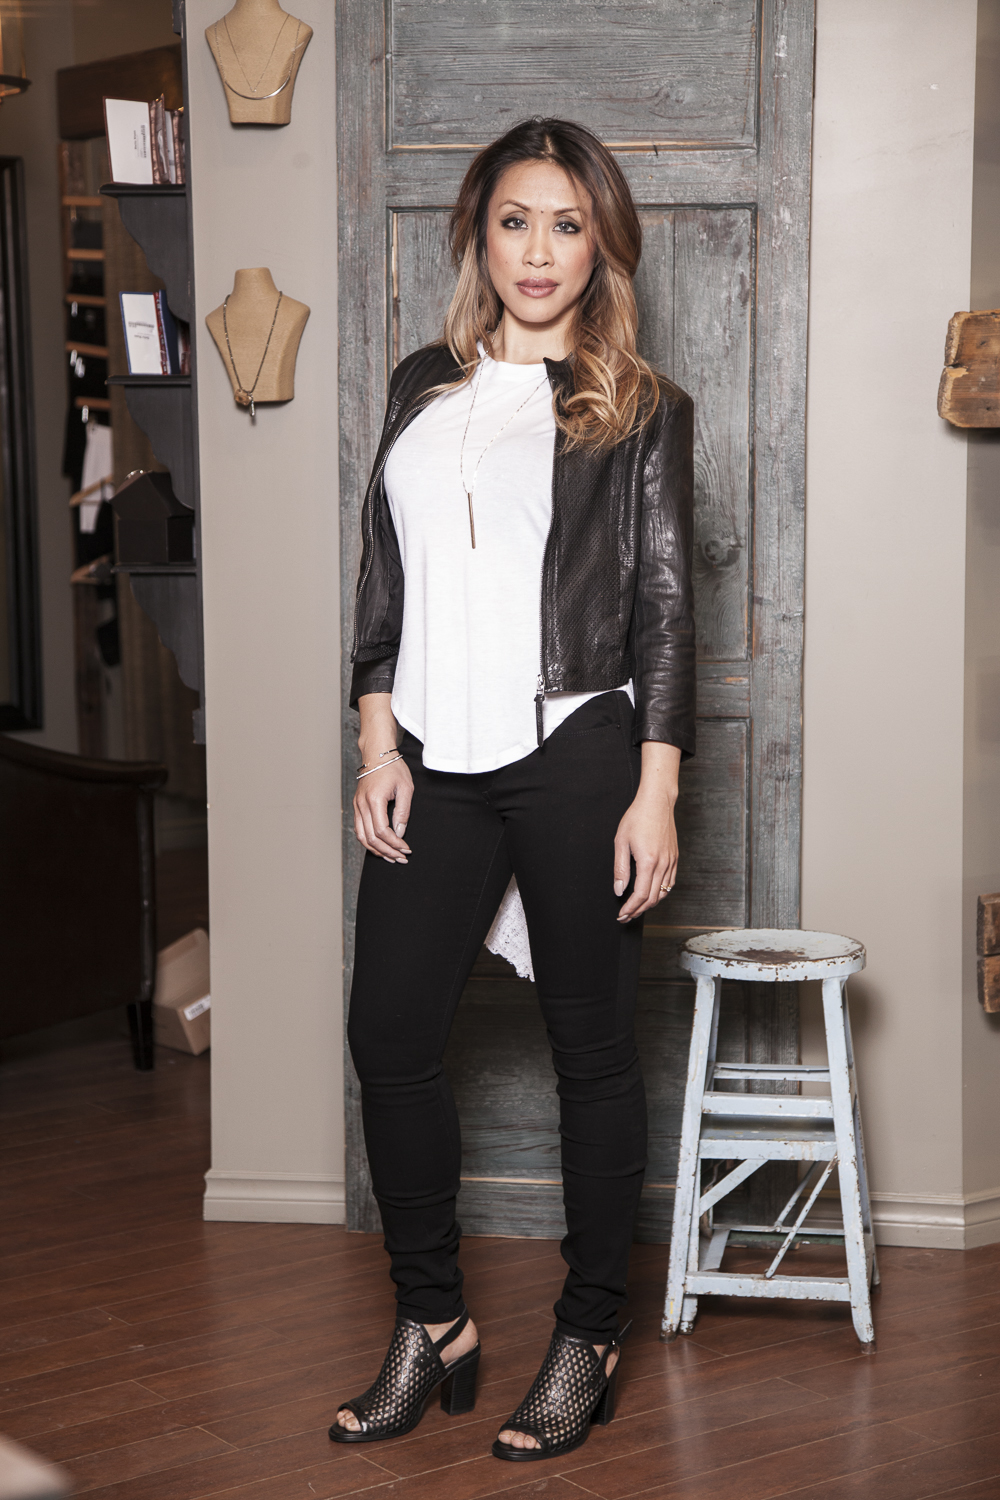 Bella-Maas-Boutique-black-and-white-spring-fashion-edmonton-st-albert-sherwood-park-local-style-trend-bano-eemee-leather-jacket-joe's-jeans'mid-rise-skinny